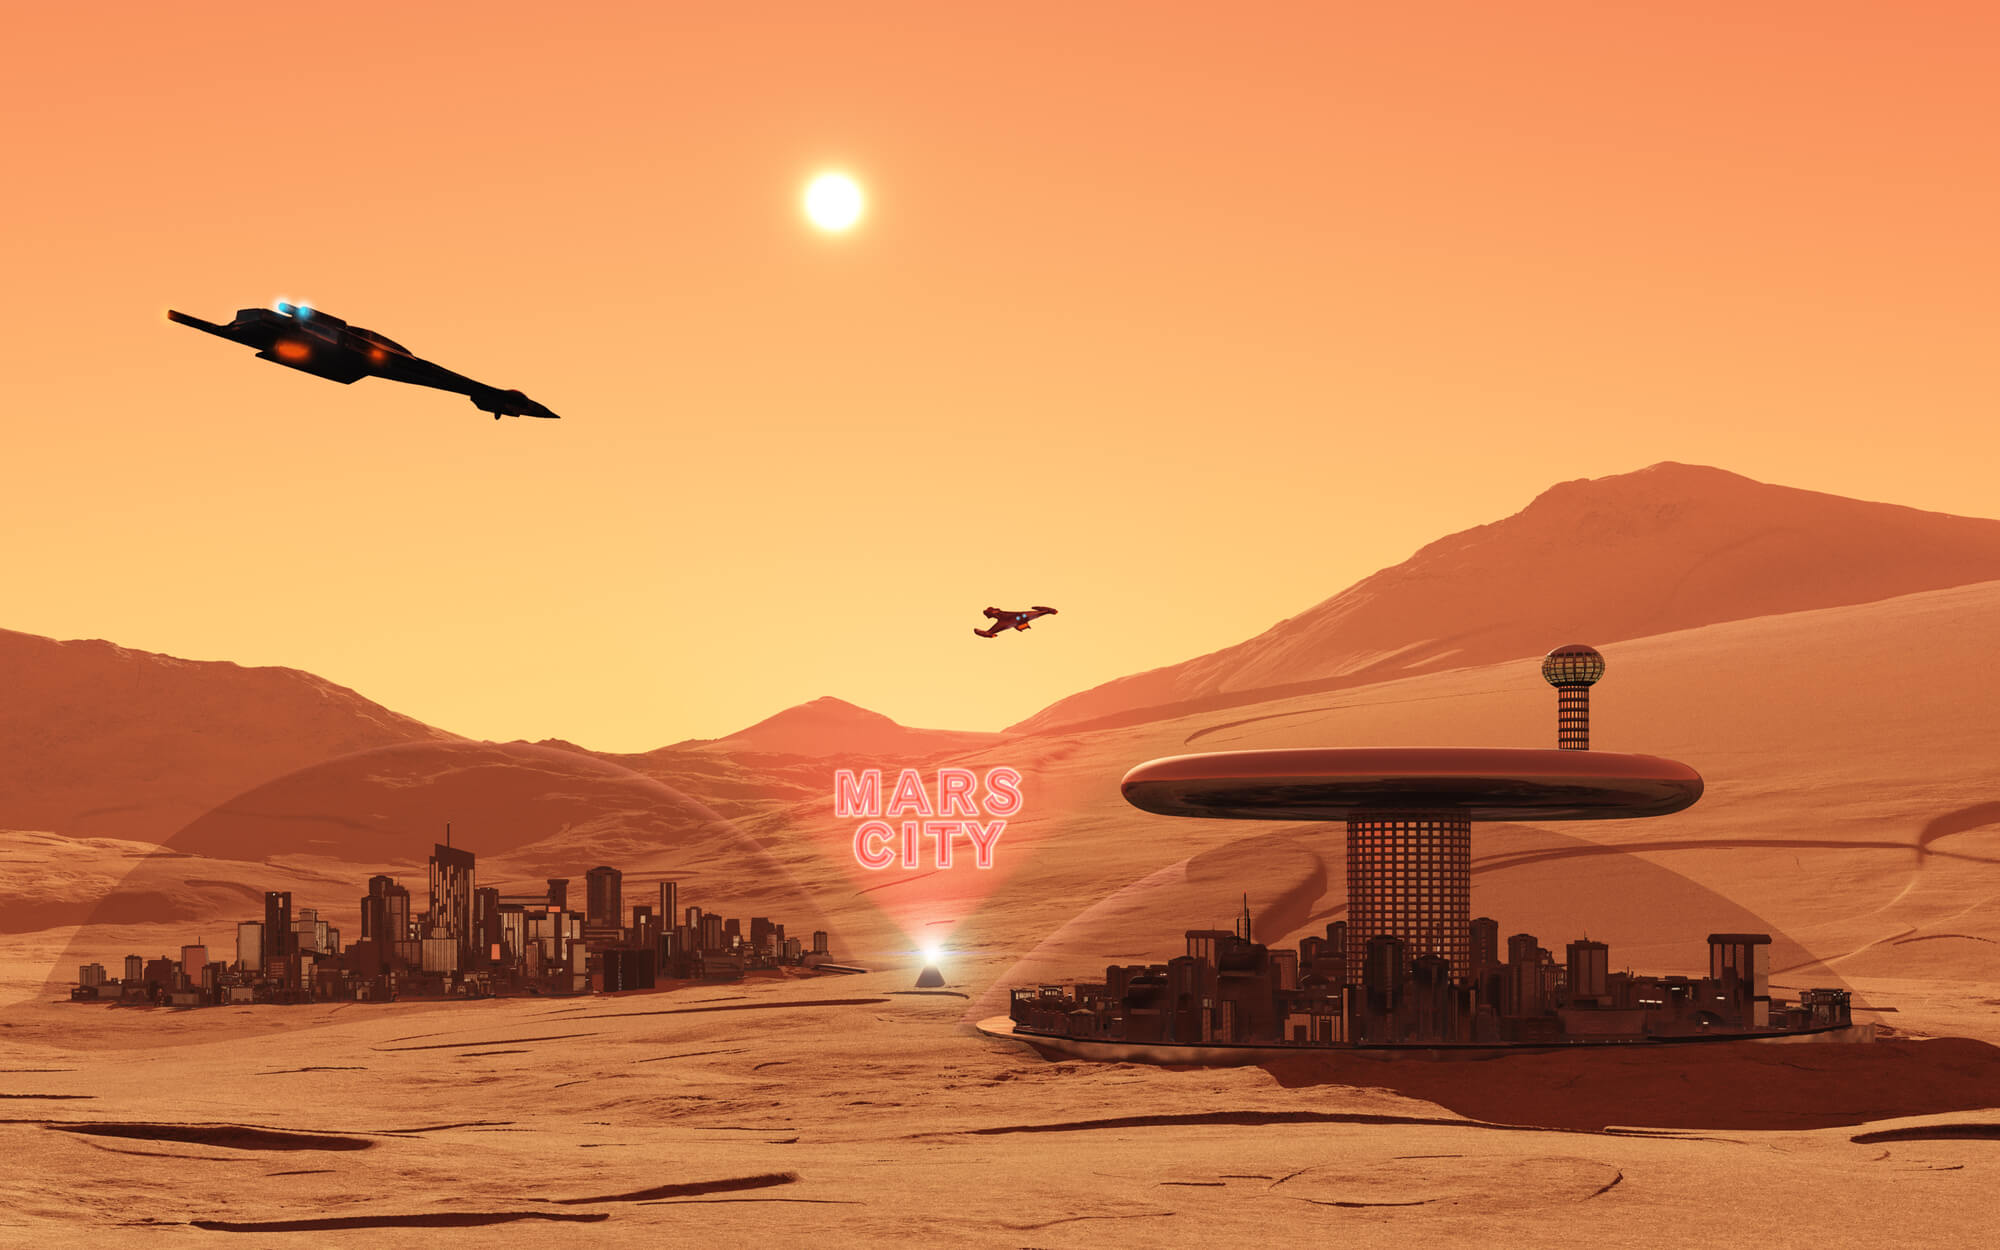 An artist's depiction of Mars City.